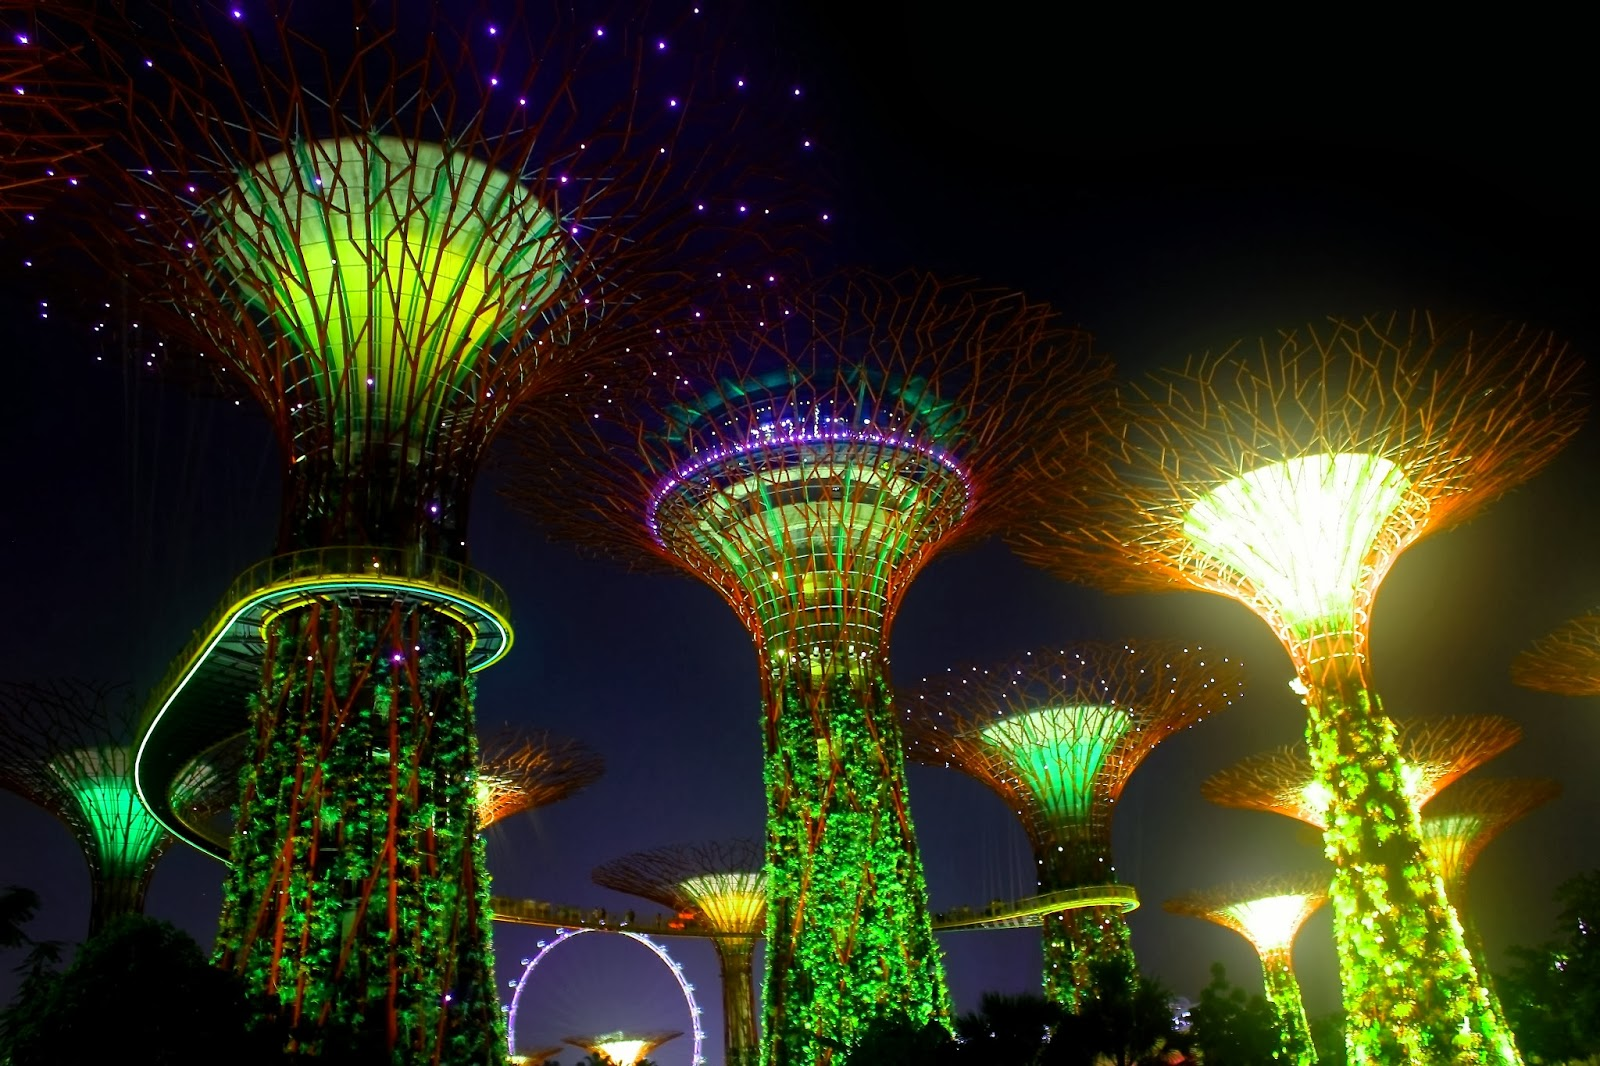 Travel bugs mid autumn festival at gardens by the bay - Garden by the bay festival ...